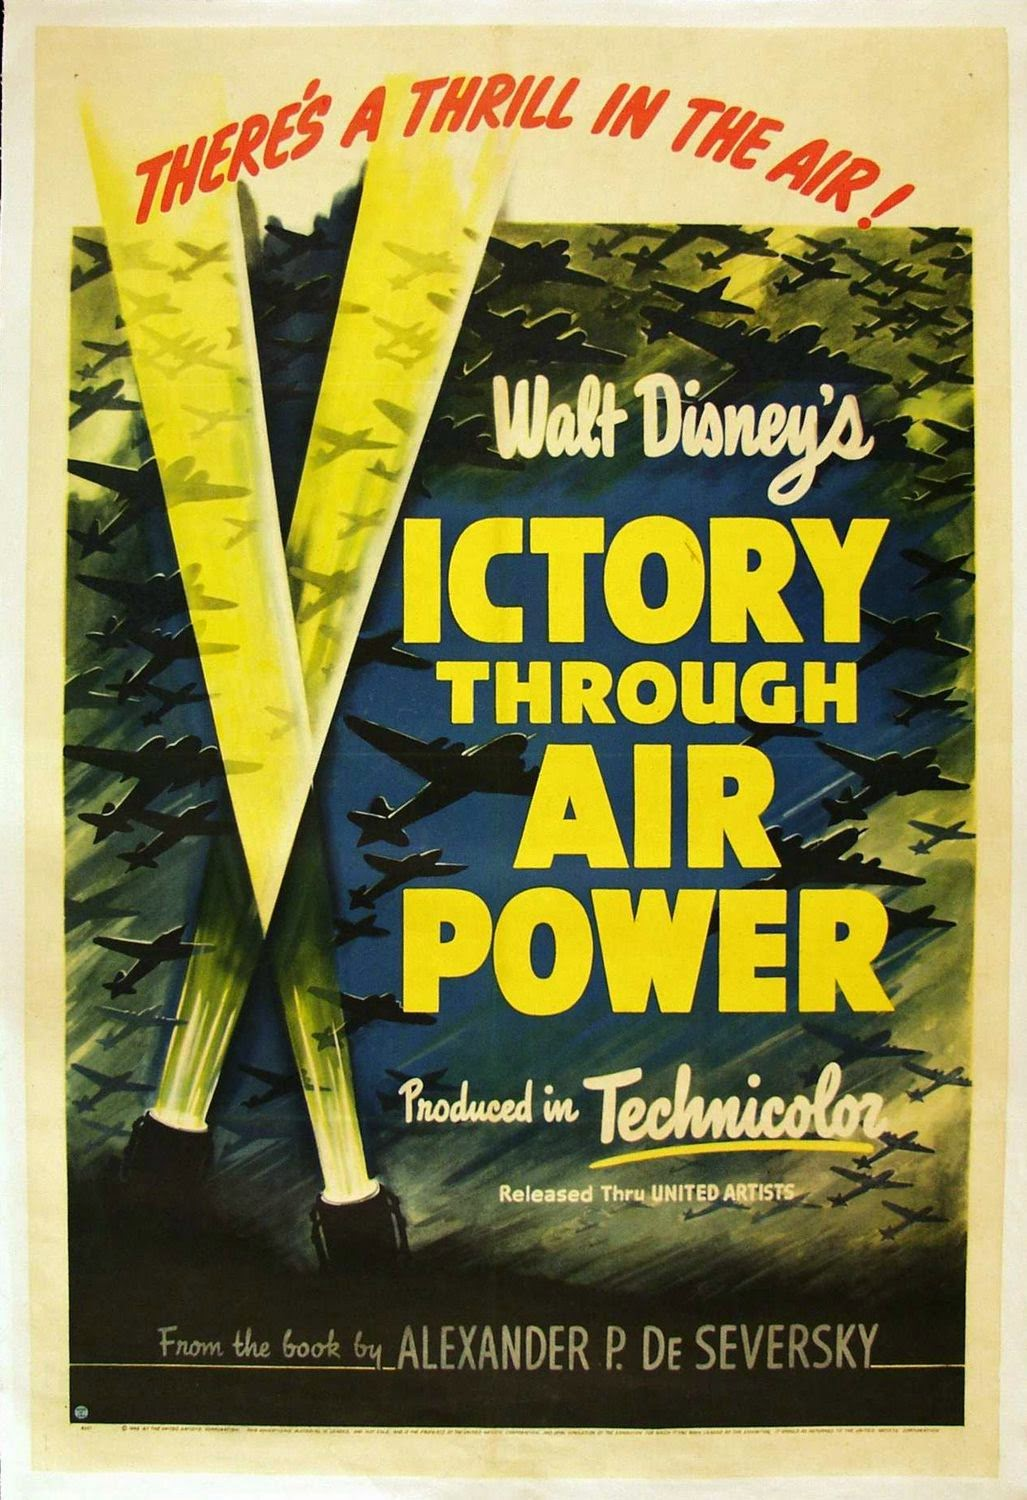 Victory Through Air Powrer Movie Poster